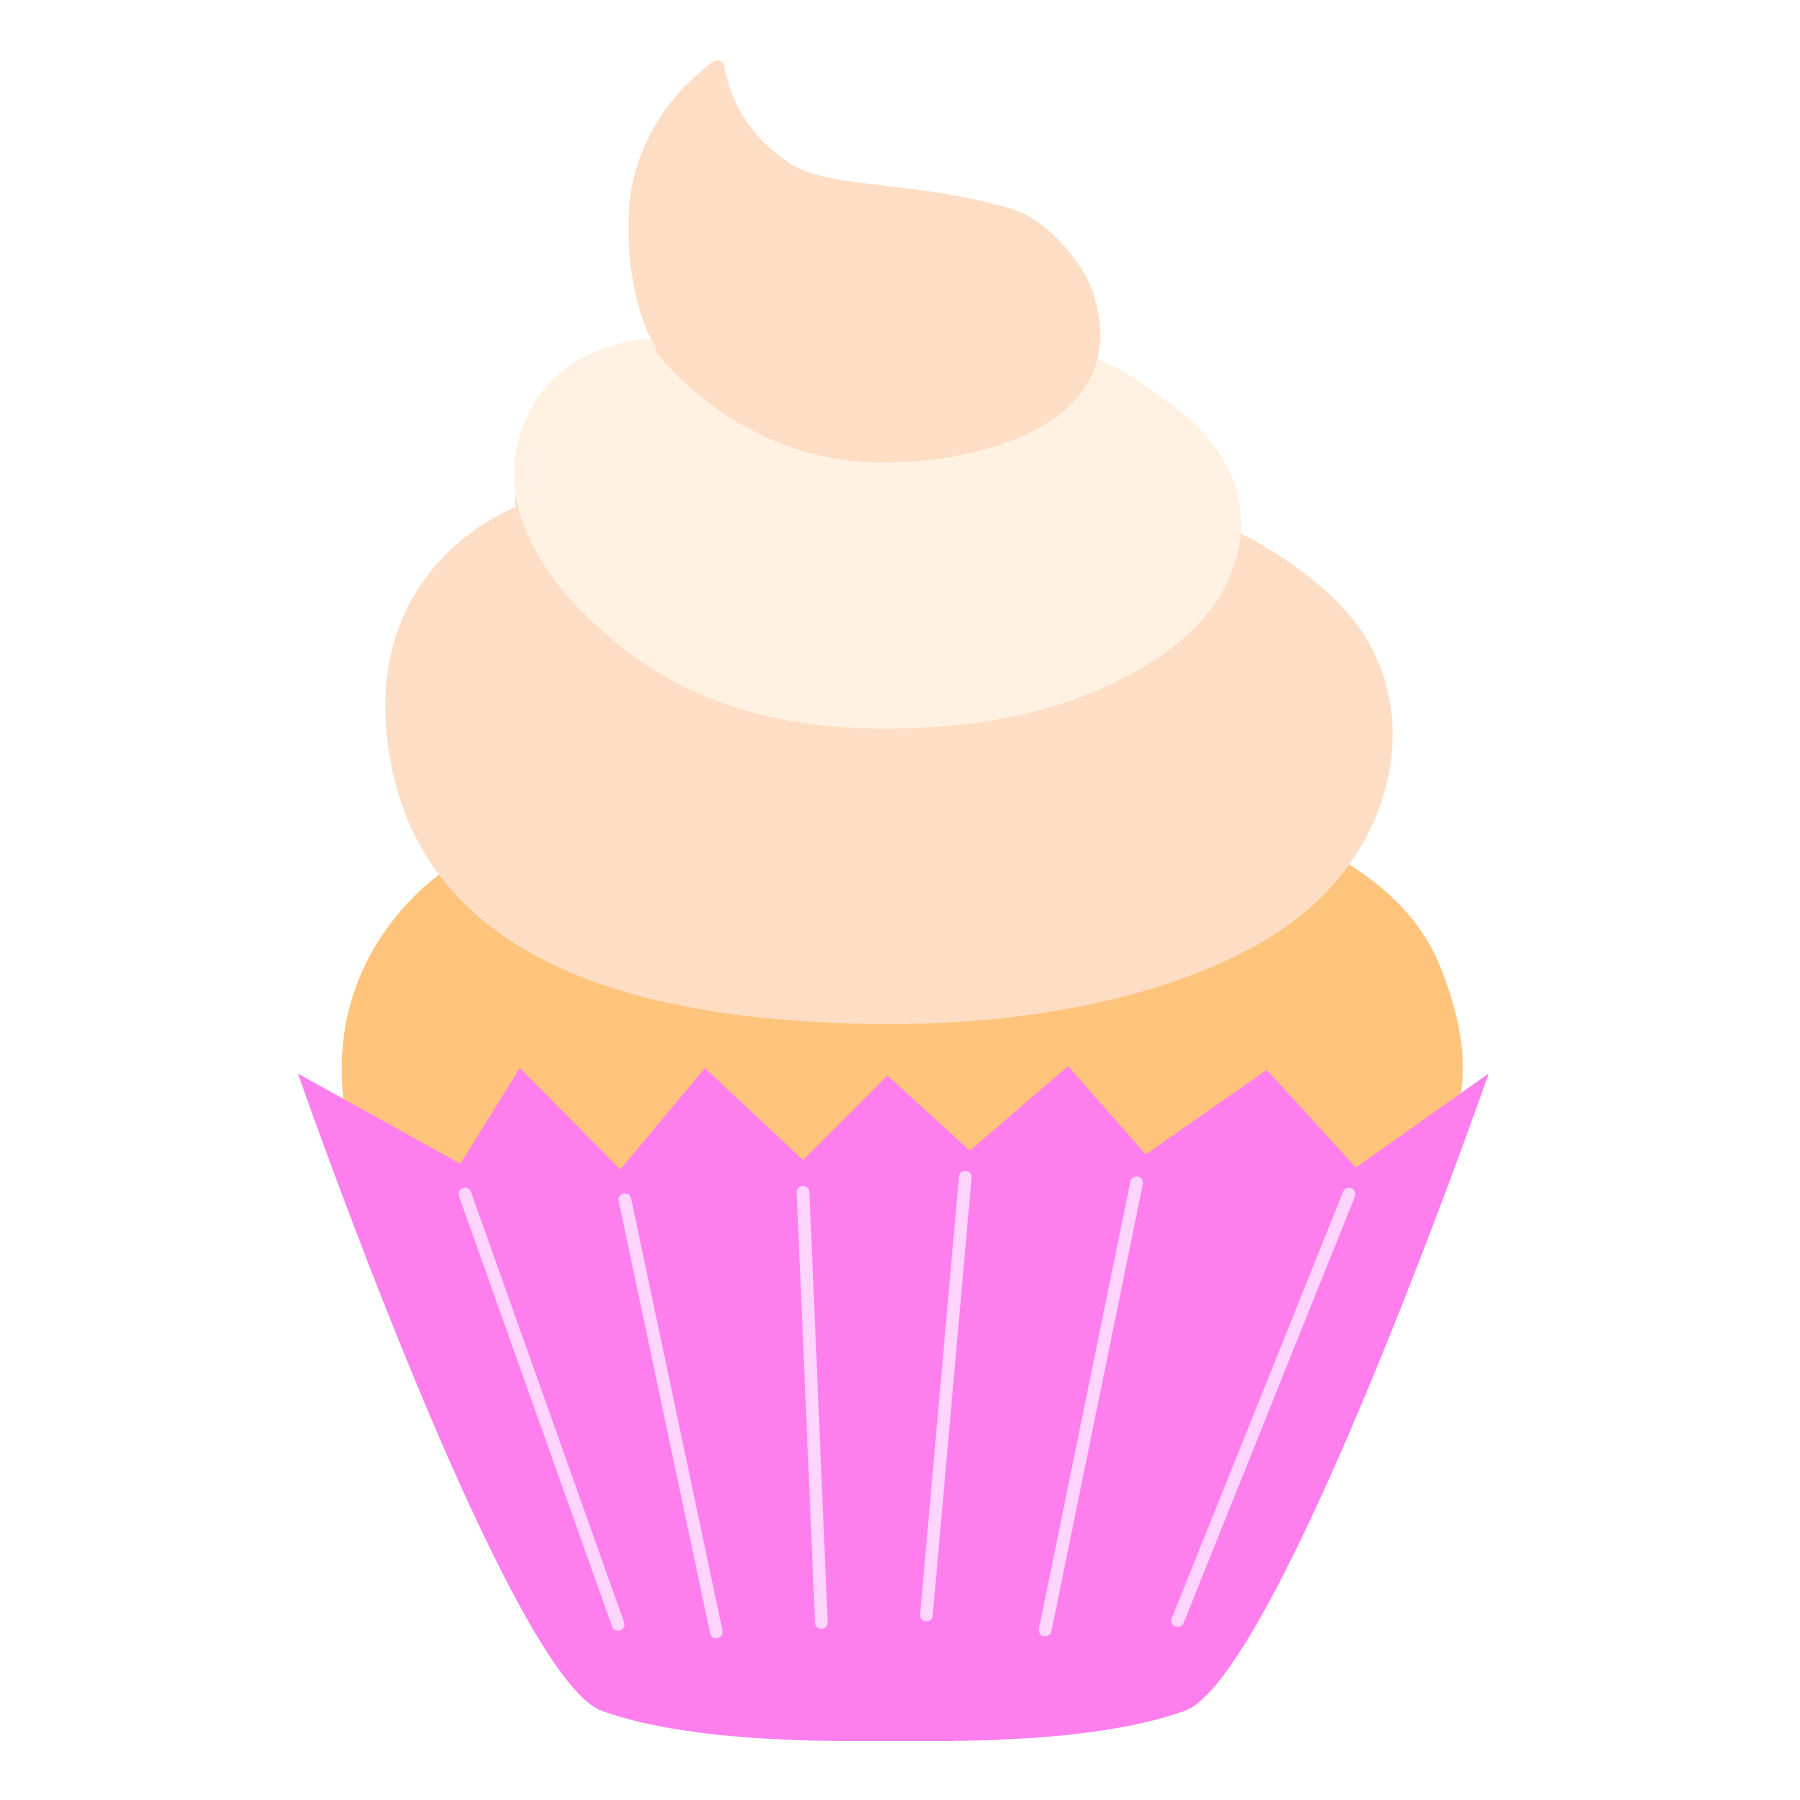 Baked goods clipart bake sale. Black and white free